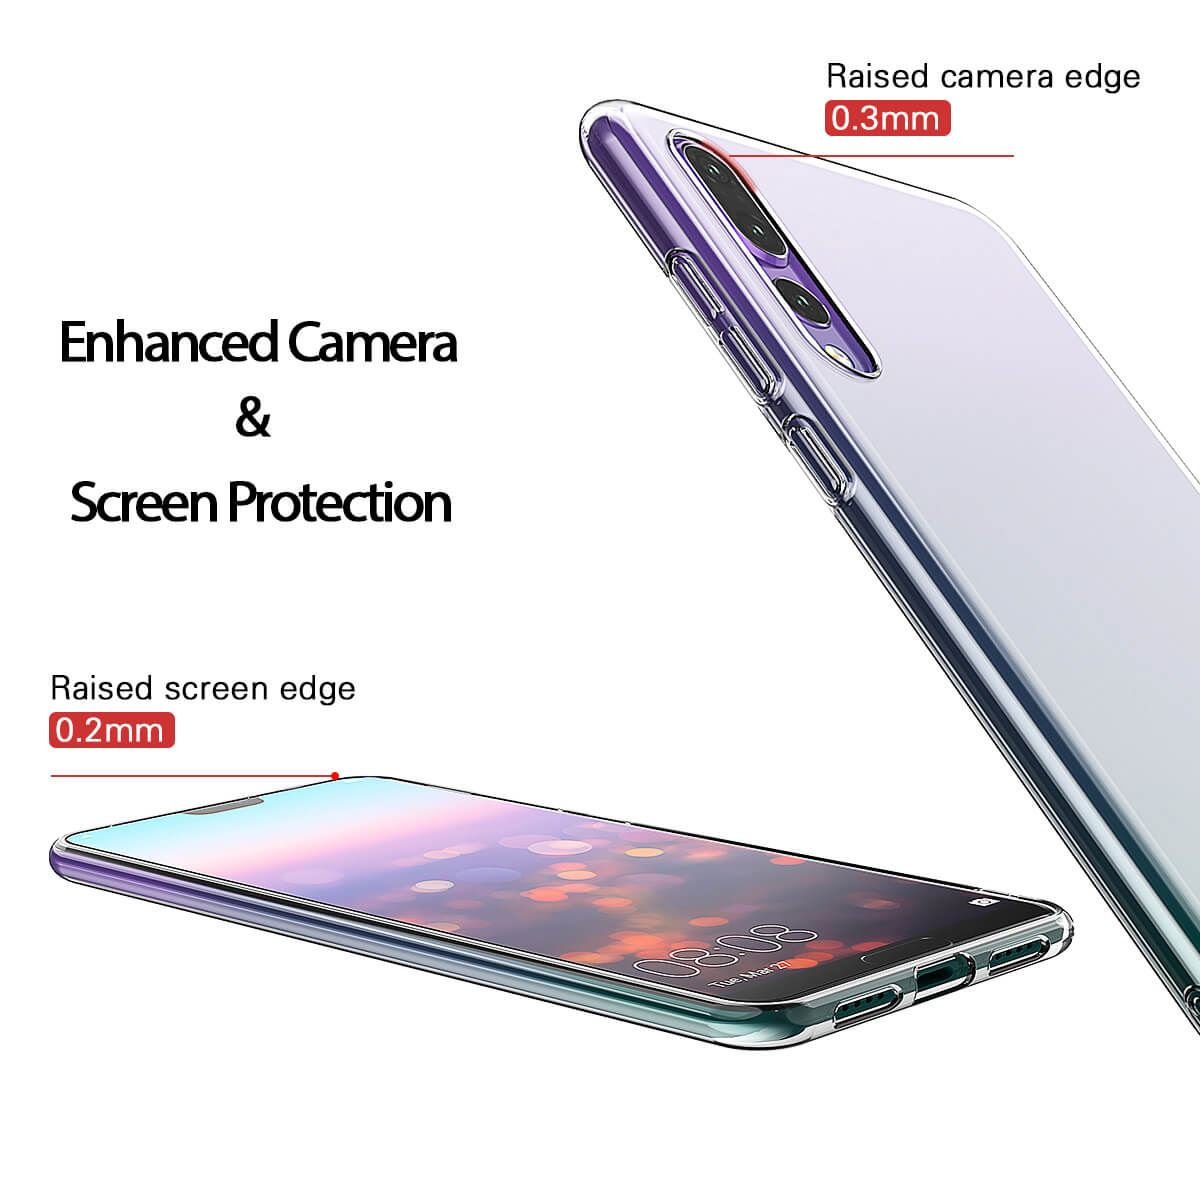 Shockproof-Silicone-Protective-Clear-Gel-Cover-Case-For-Huawei-P20-Pro-P-Smart thumbnail 80